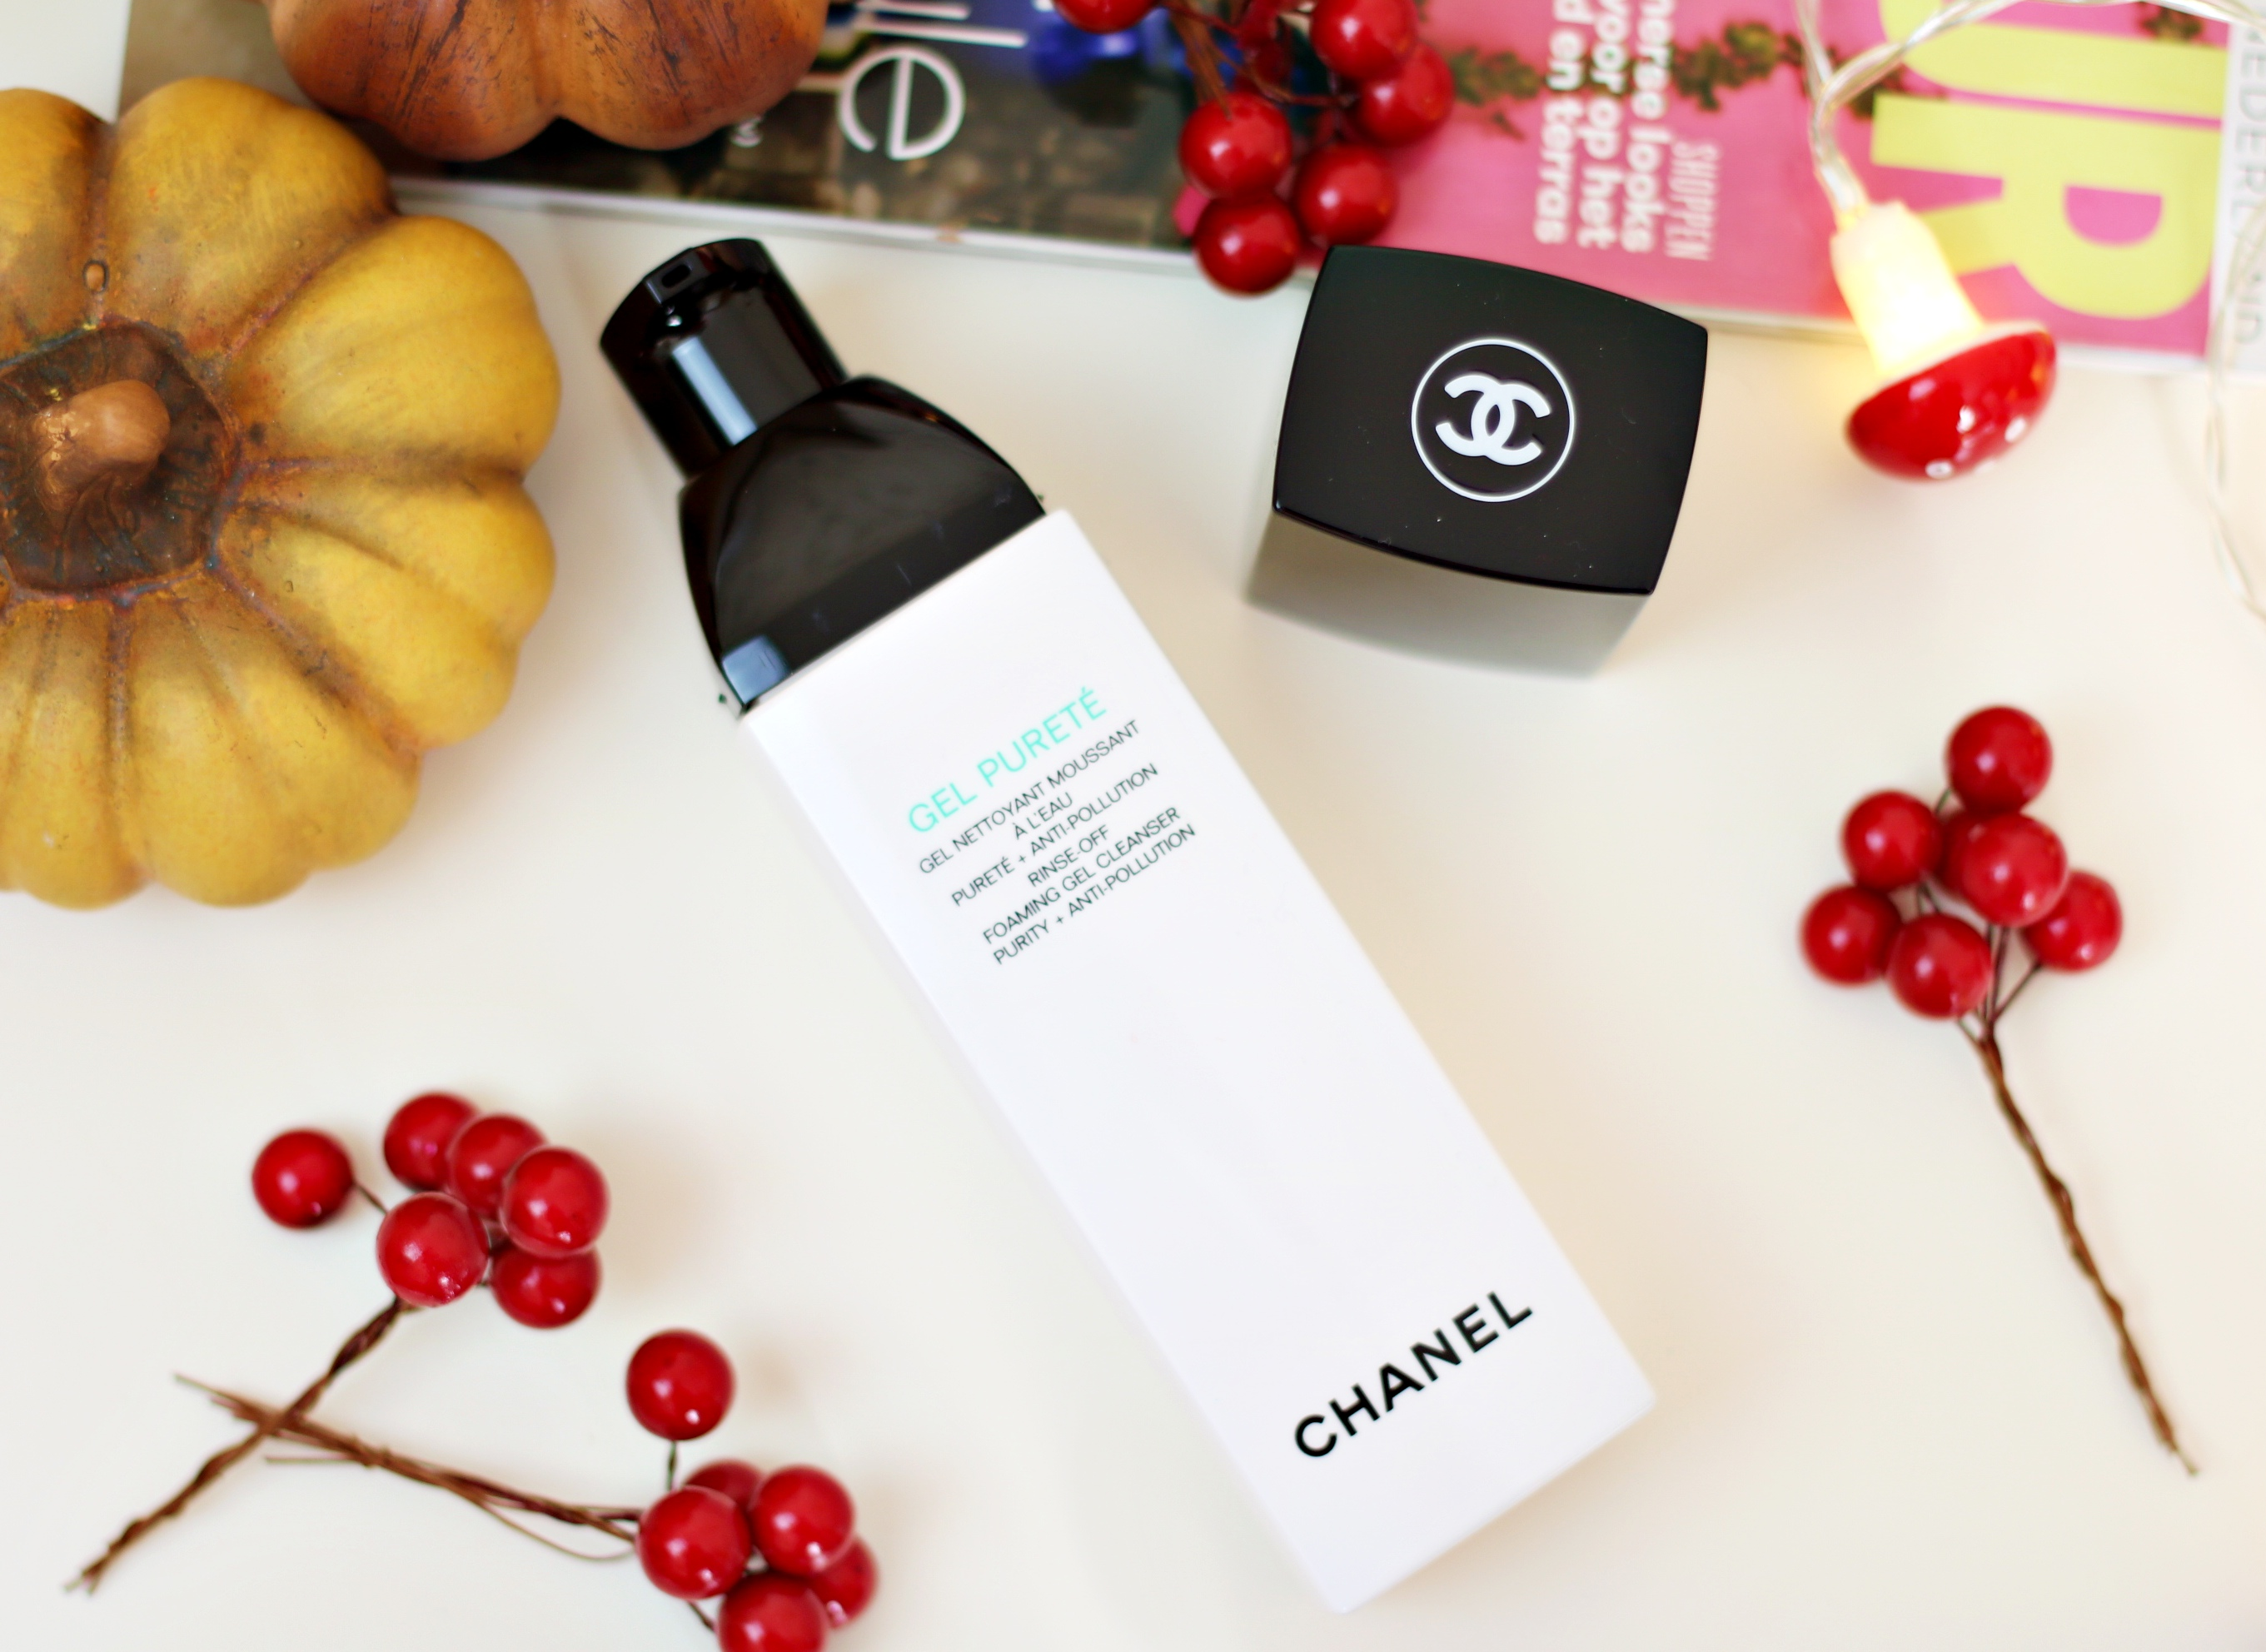 Luxurious Cleansing With The Chanel Gel Pureté Purity + Anti-Pollution Foaming Gel-Cleanser